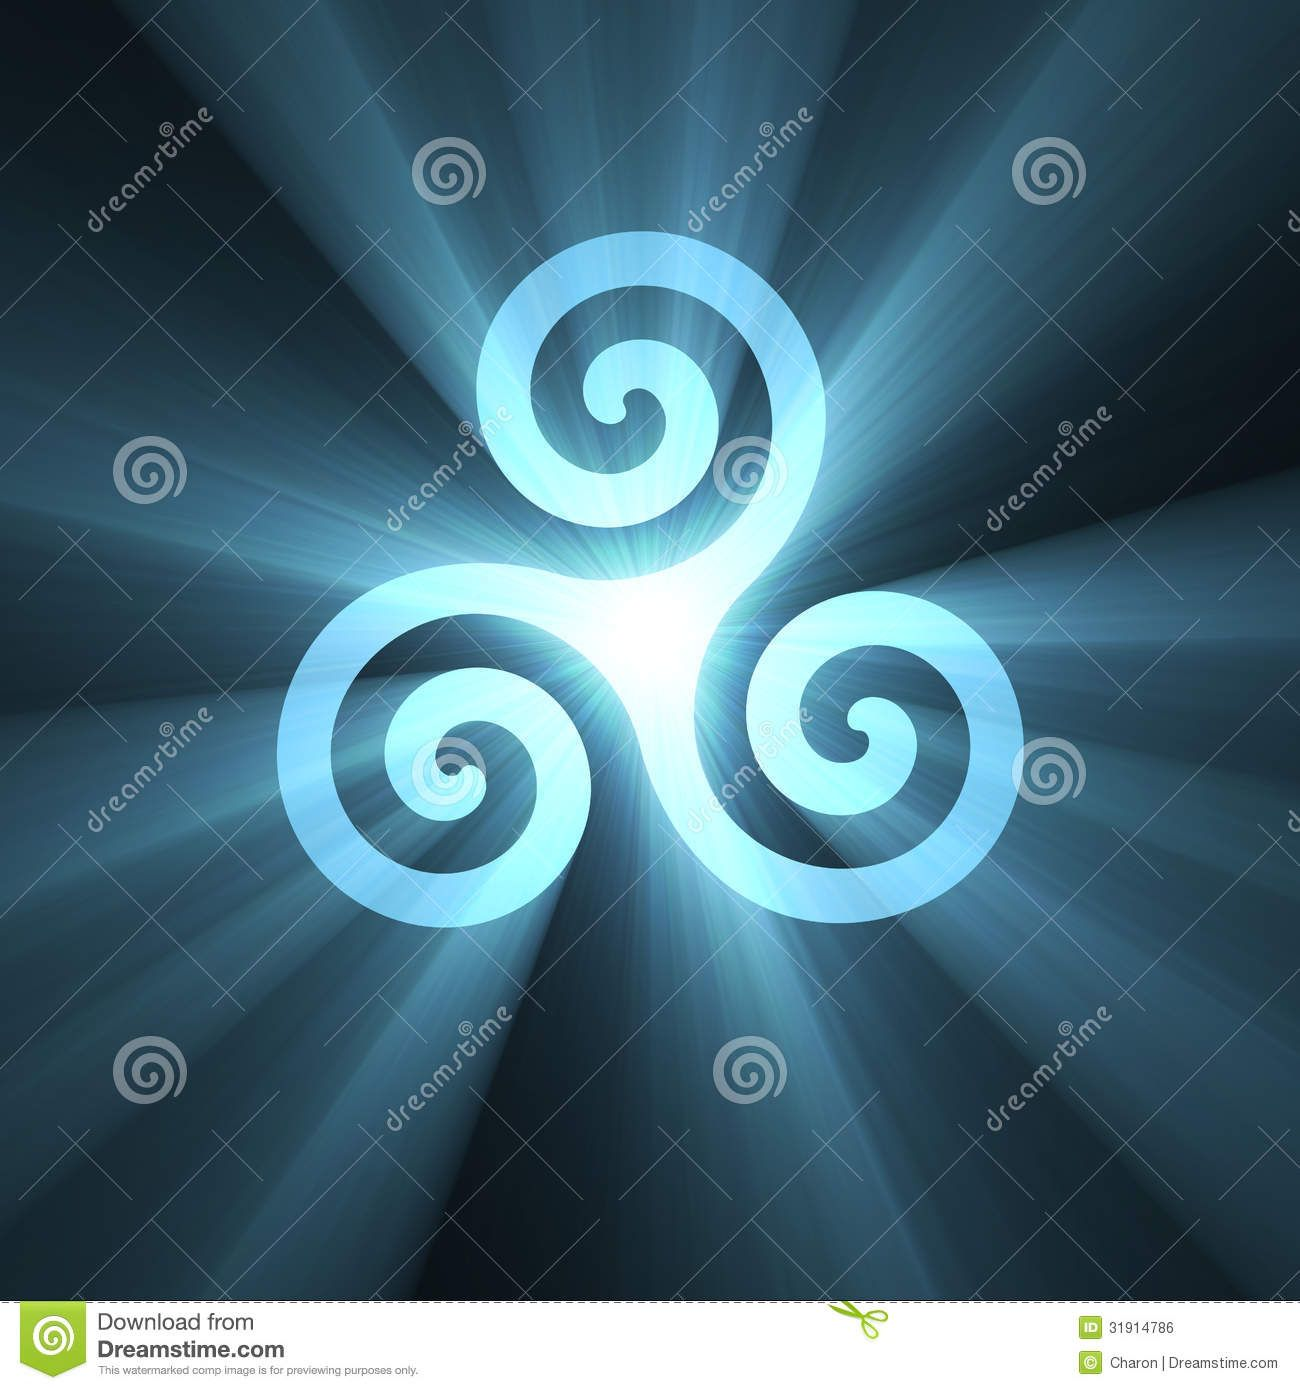 Triskelion spiral symbol light flare download from over 53 triskelion spiral symbol light flare download from over 53 million high quality stock photos biocorpaavc Choice Image